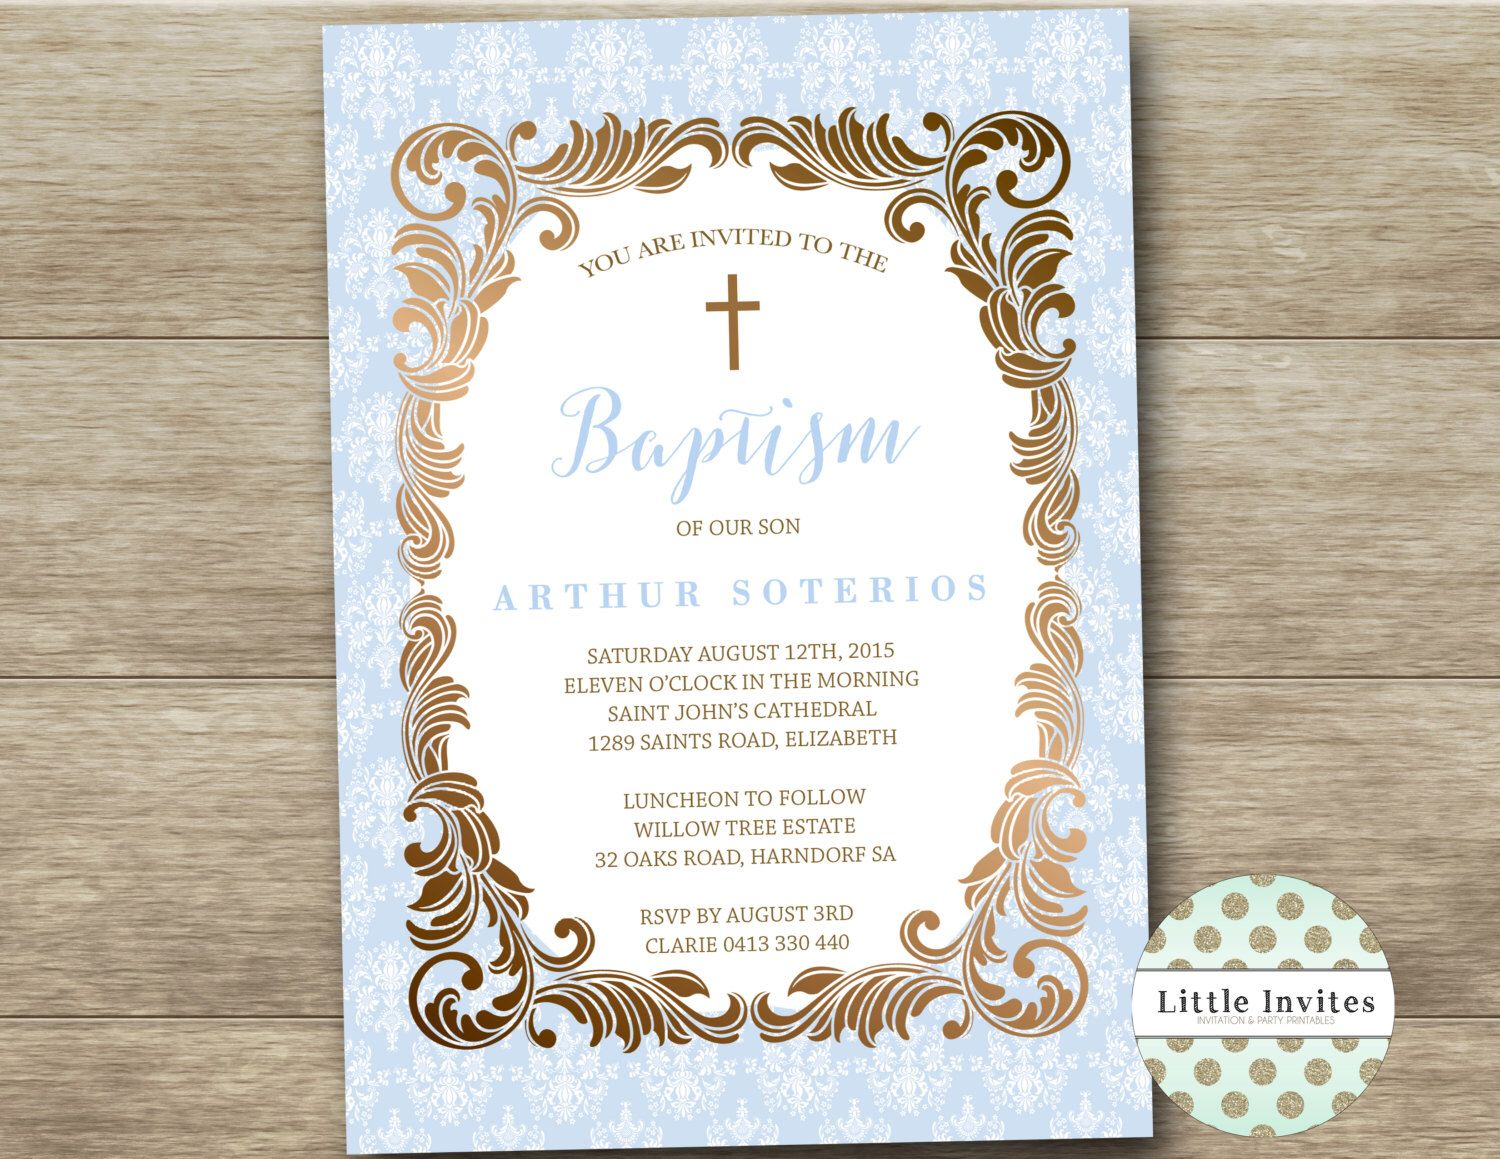 Boys baptism invitationblue damask with gold ornate frame boys baptism invitationblue damask with gold ornate frameprintableroyal prince stopboris Gallery